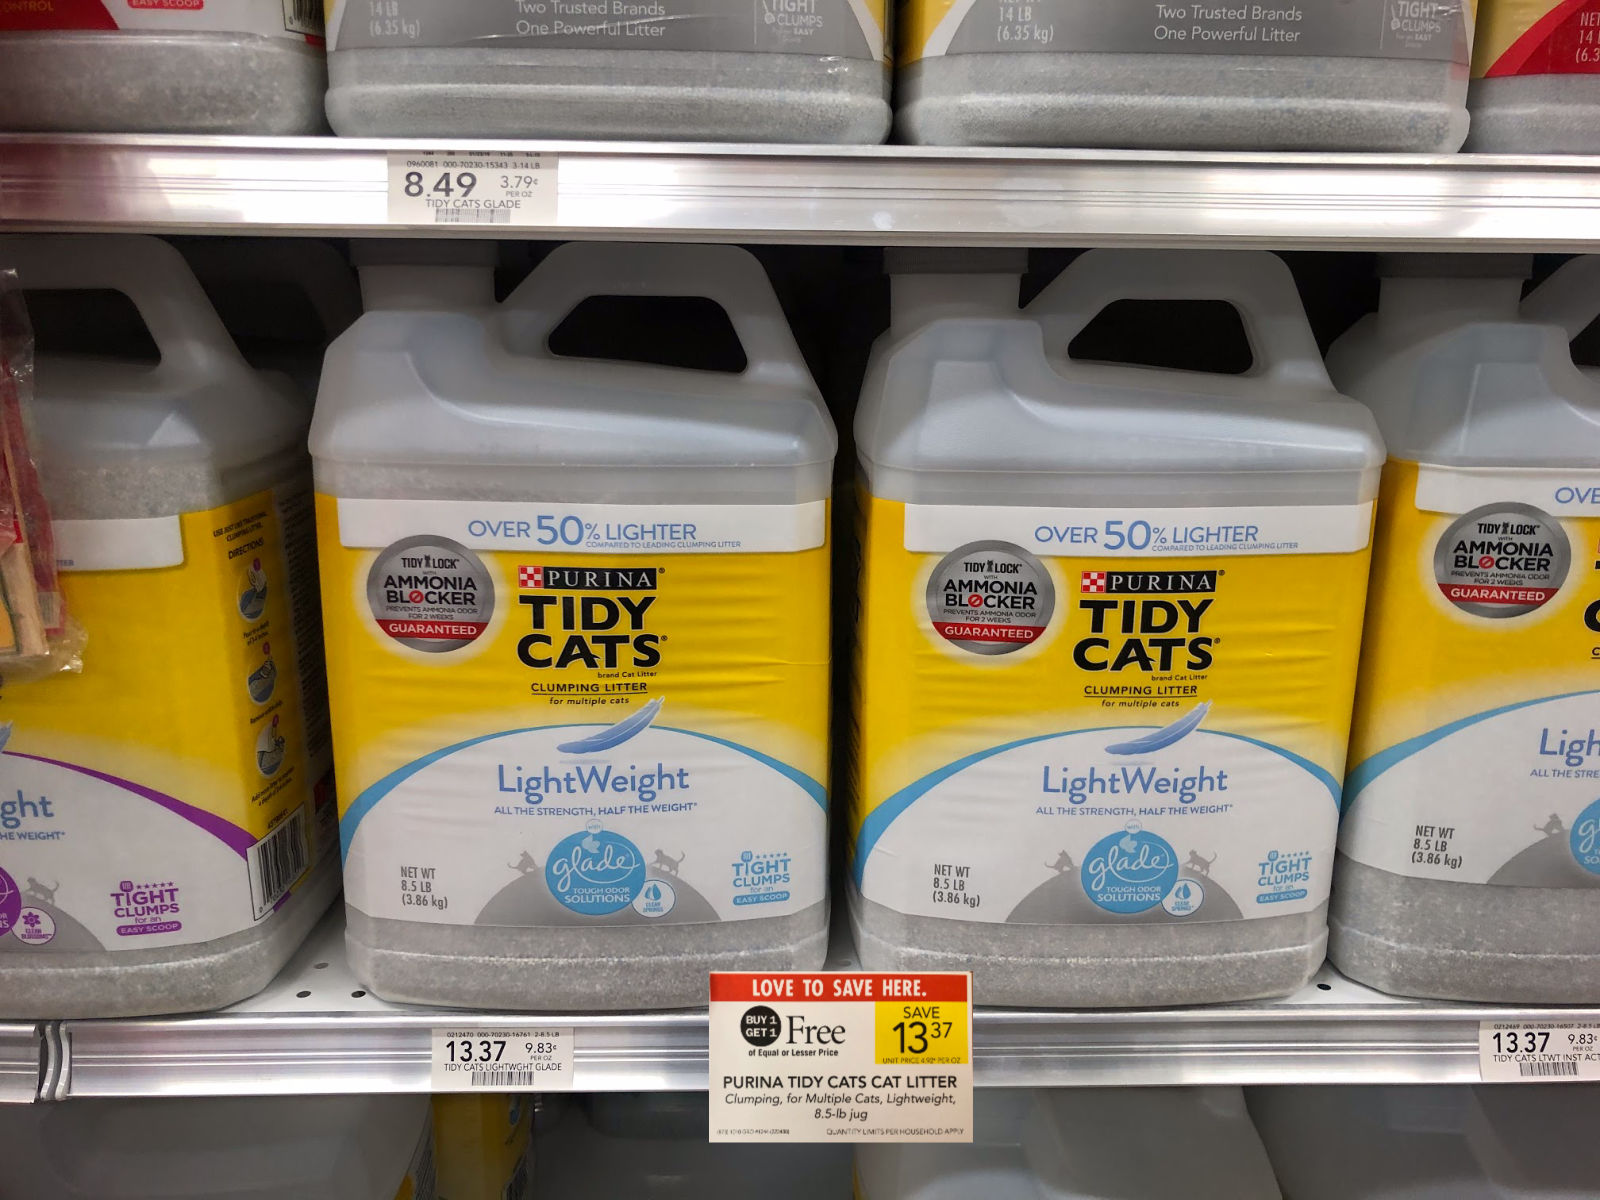 Purina Tidy Cats LightWeight Cat Litter Just $4.69 At Publix (Save Over $8!) on I Heart Publix